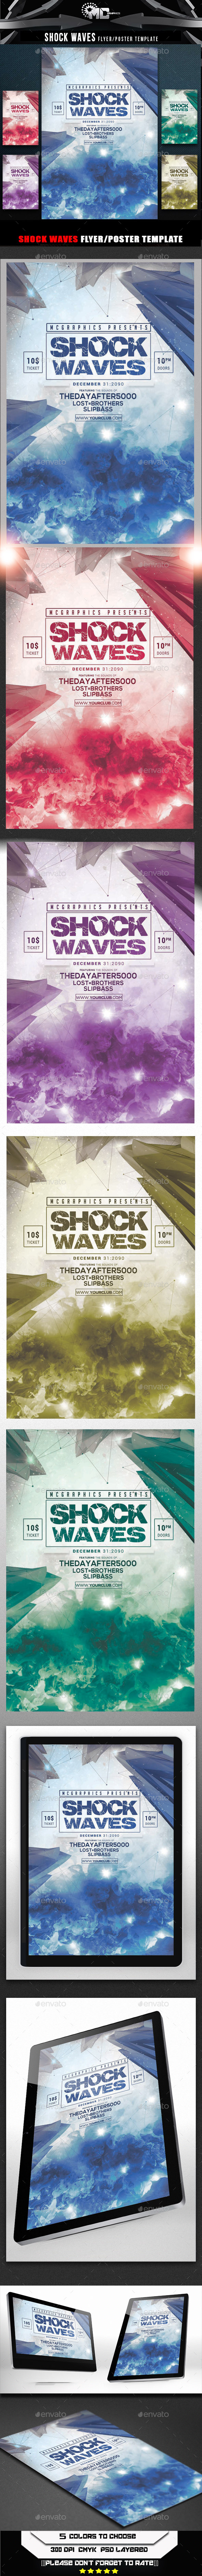 Shock Waves Flyer Template - Flyers Print Templates